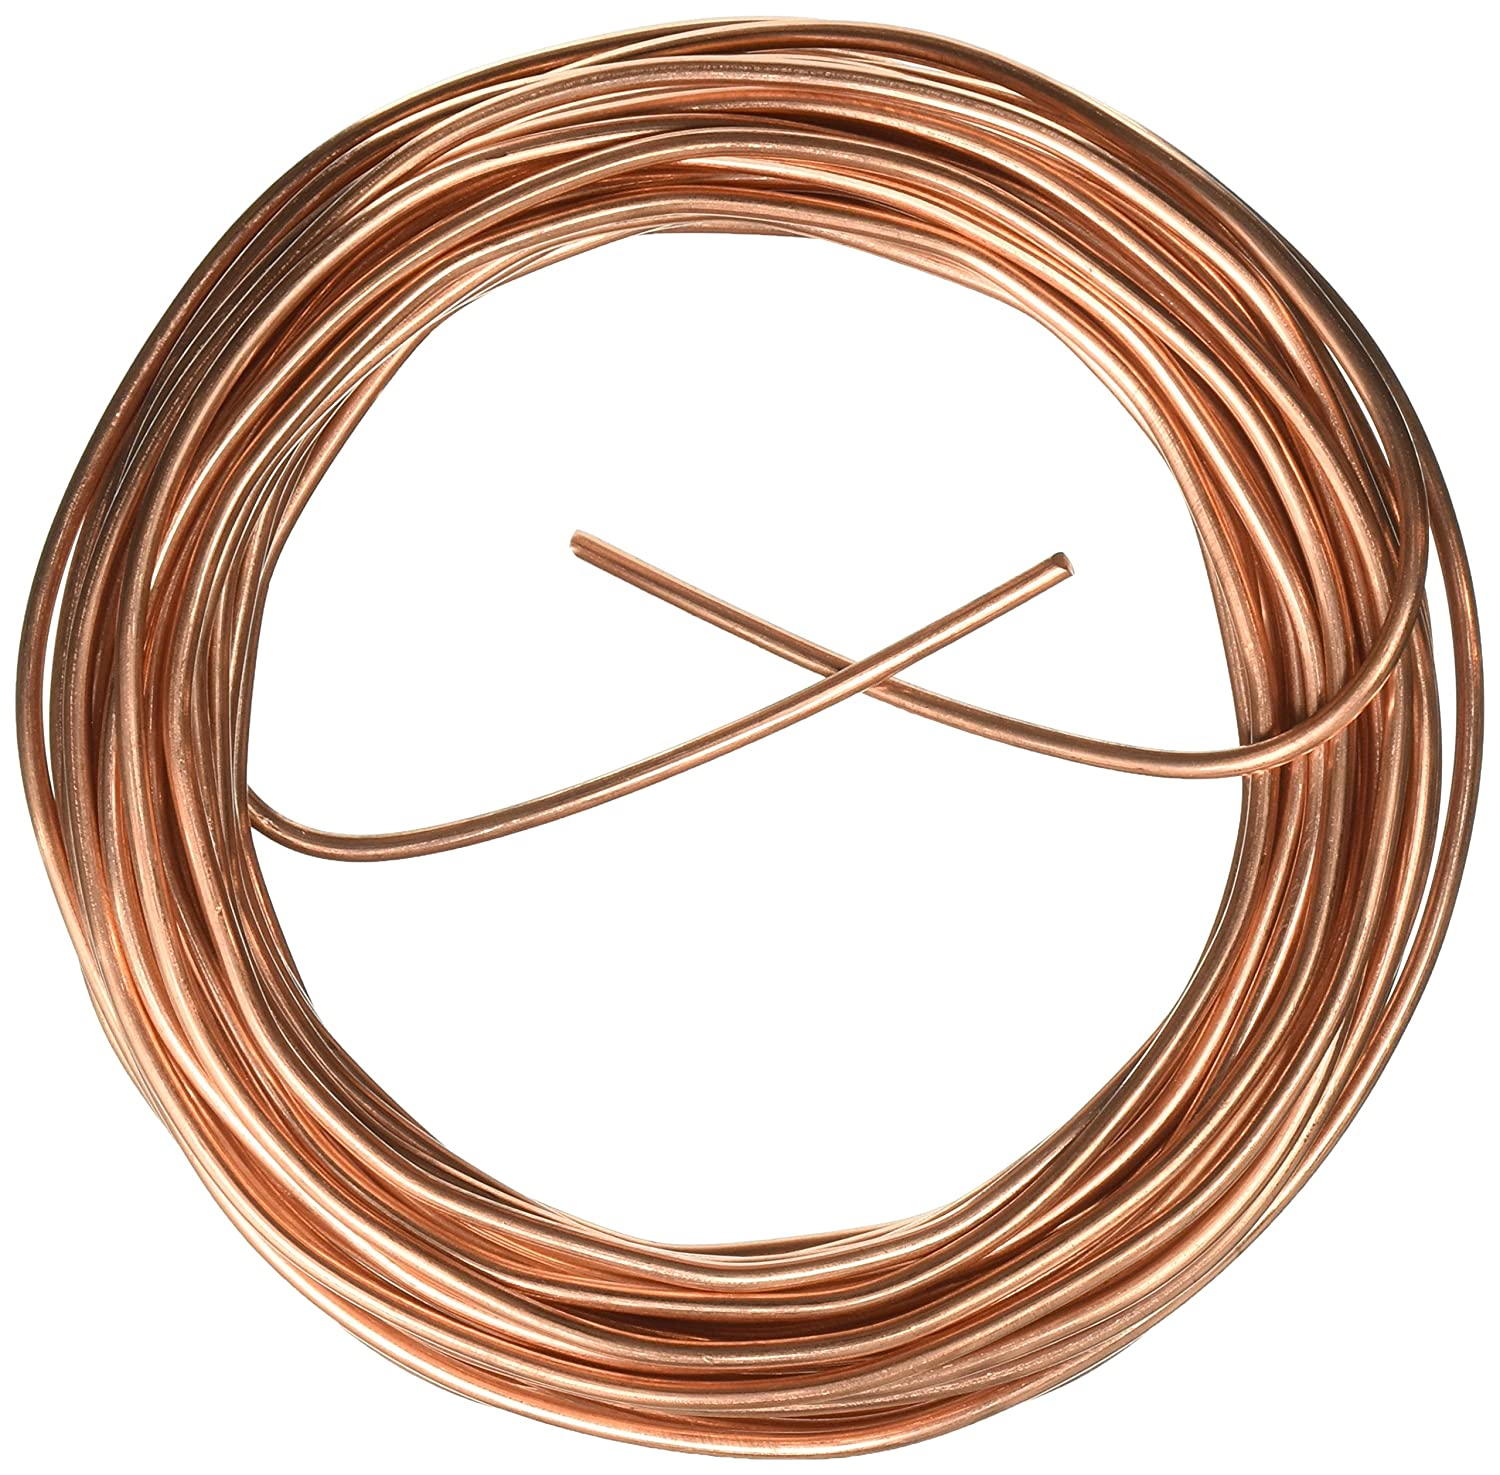 Cerrowire 050-2000A 25-Feet 8 Gauge Bare Solid Copper Wire ...